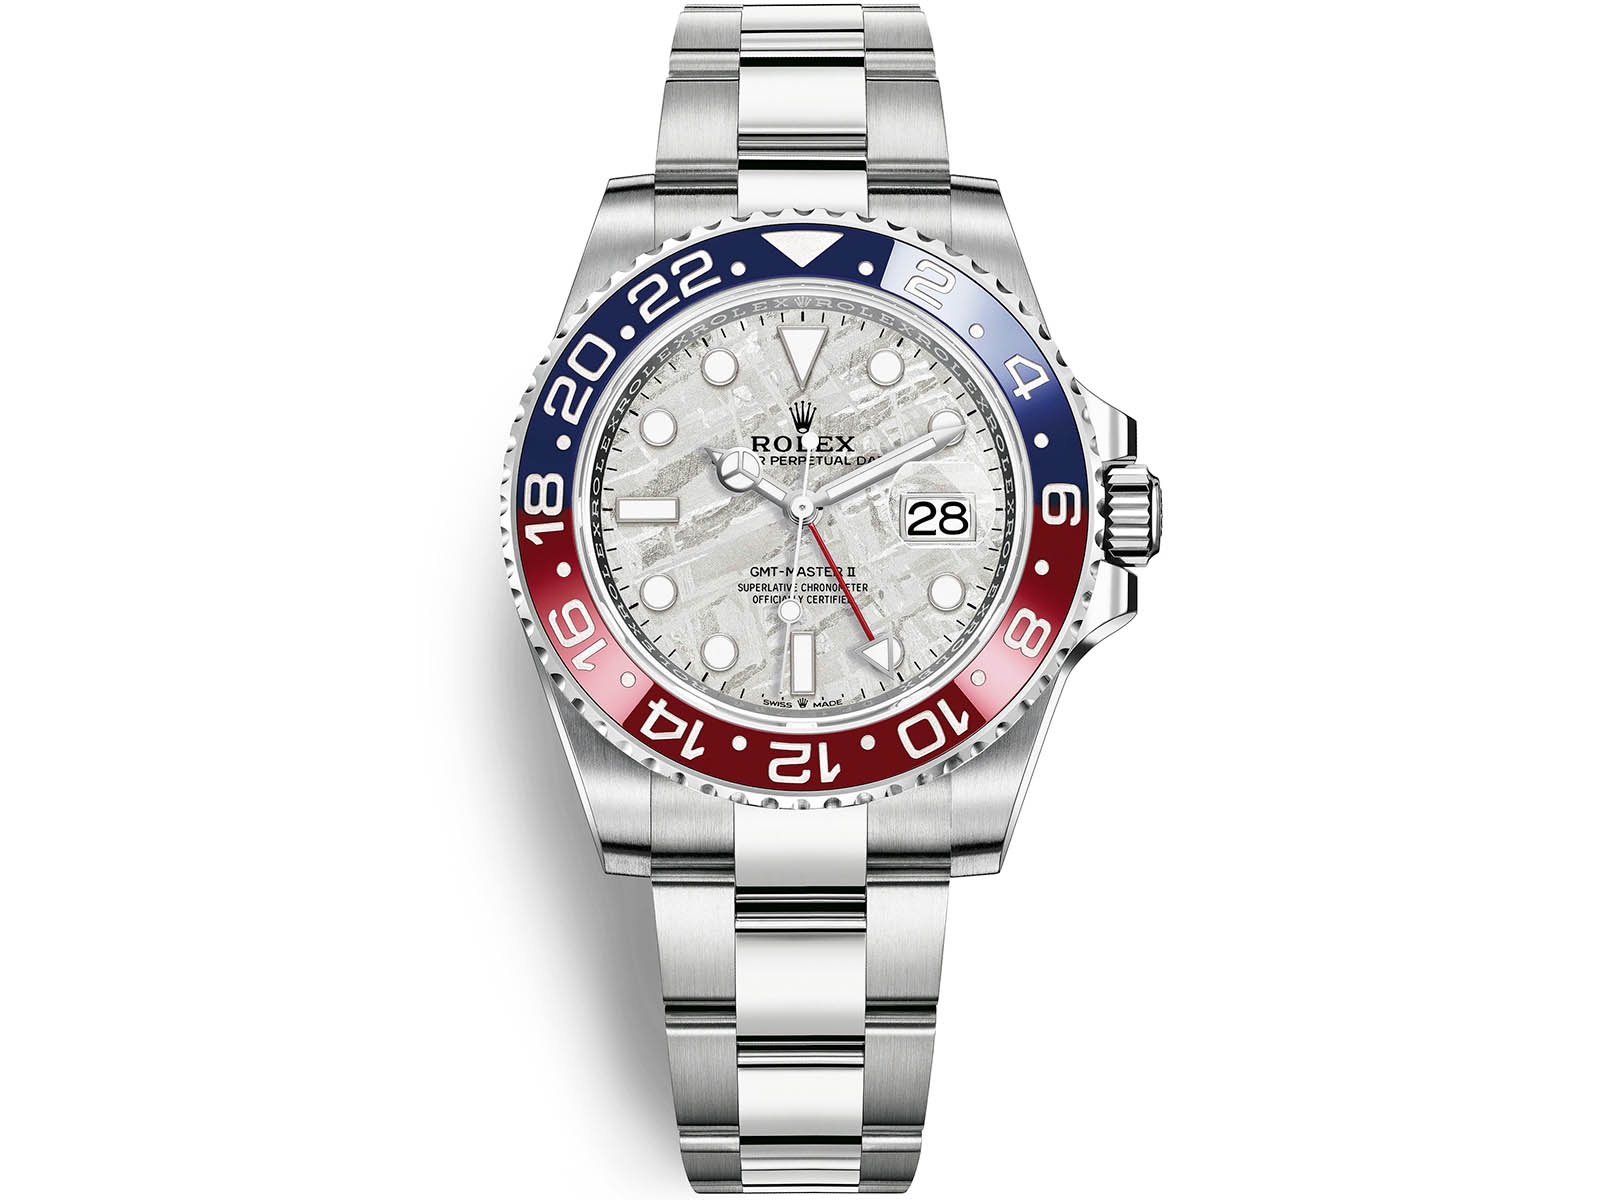 126719blro-rolex-oyster-perpetual-gmt-master-2-pepsi-white-gold-1.jpg